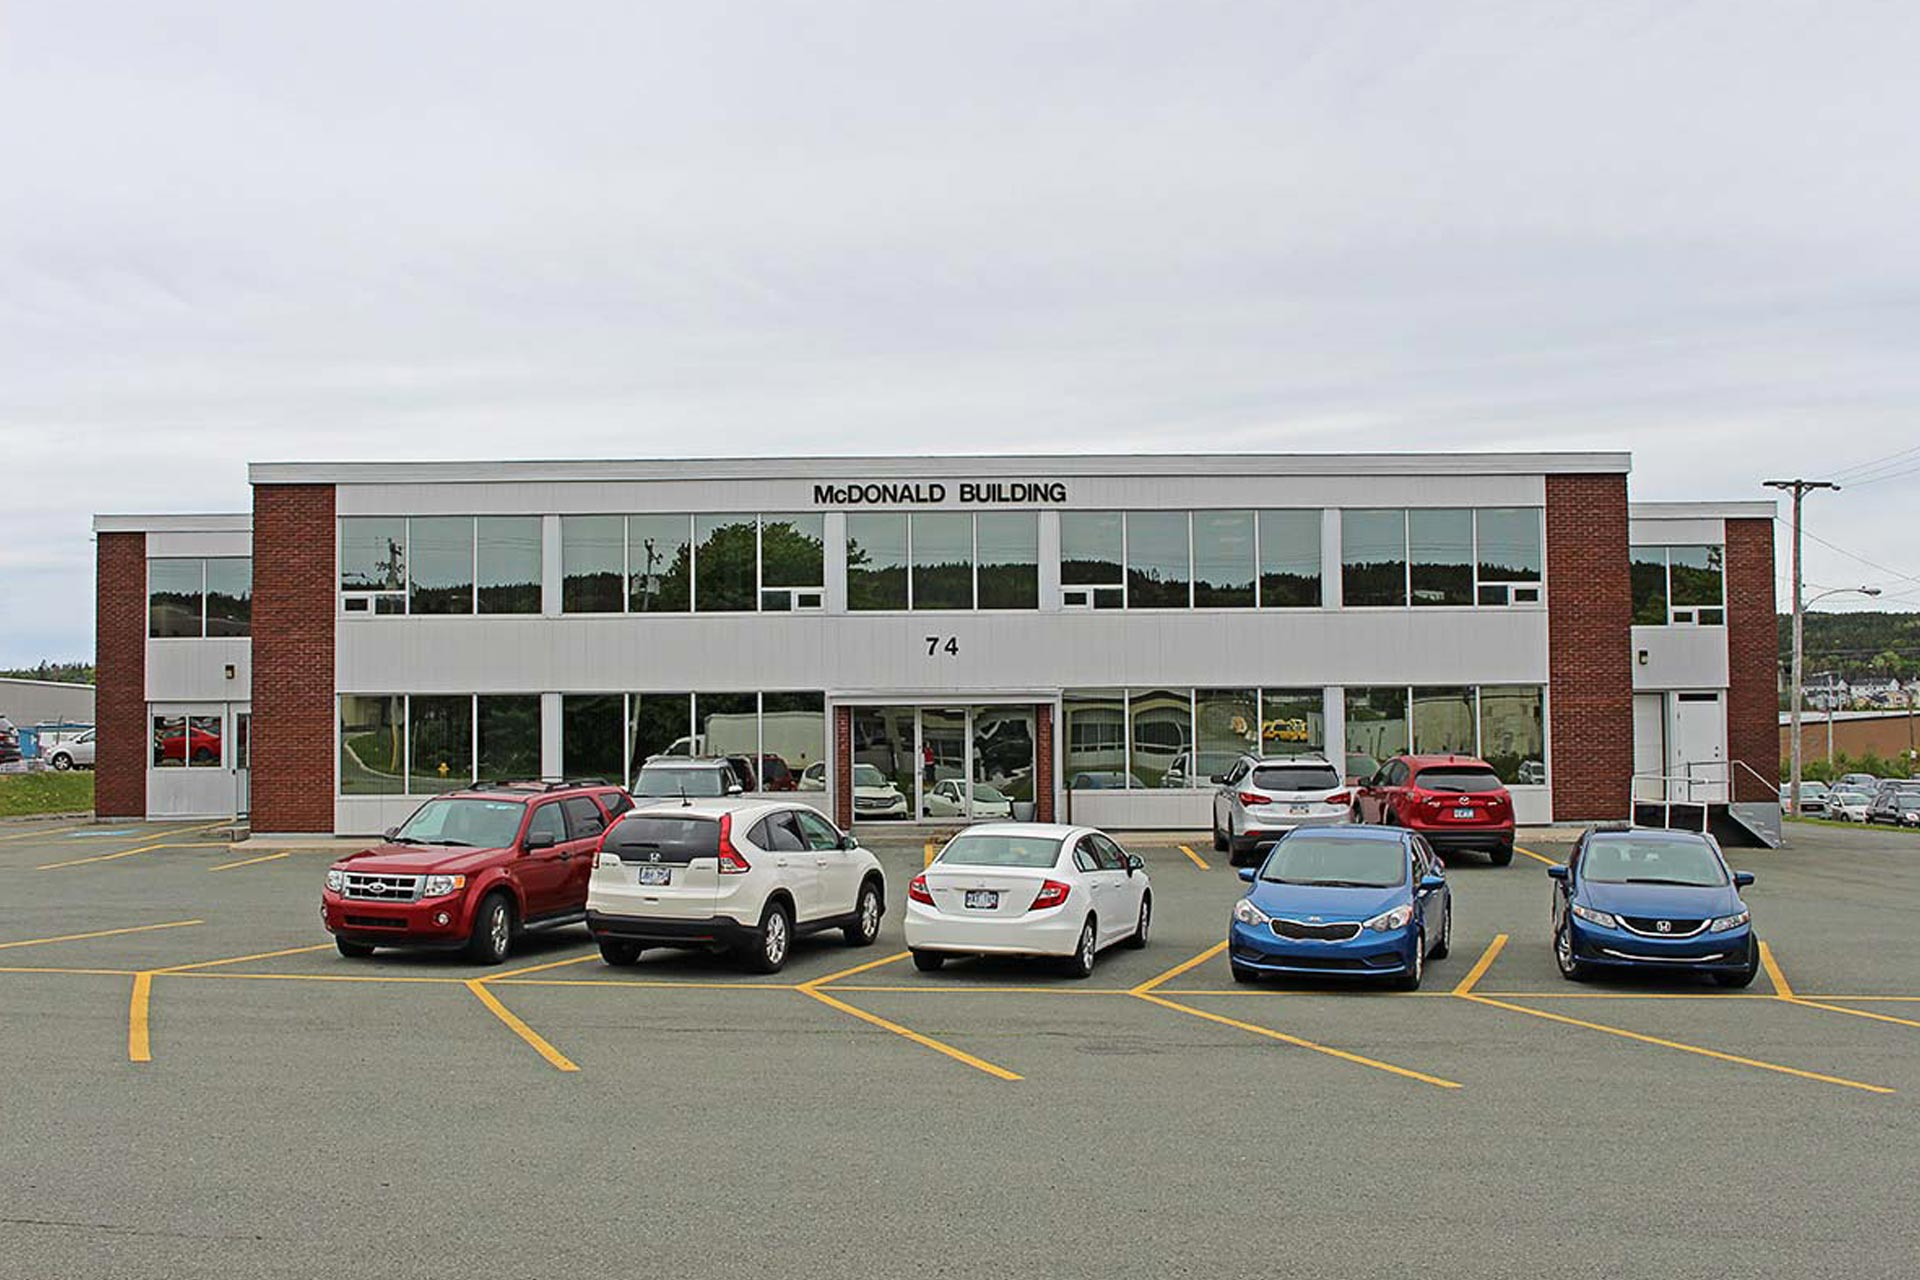 $800 (L) - 74 O`leary Avenue, Unit#002, St. John`sMLS ® : 1198819FOR LEASE | 850 SQ.FT.